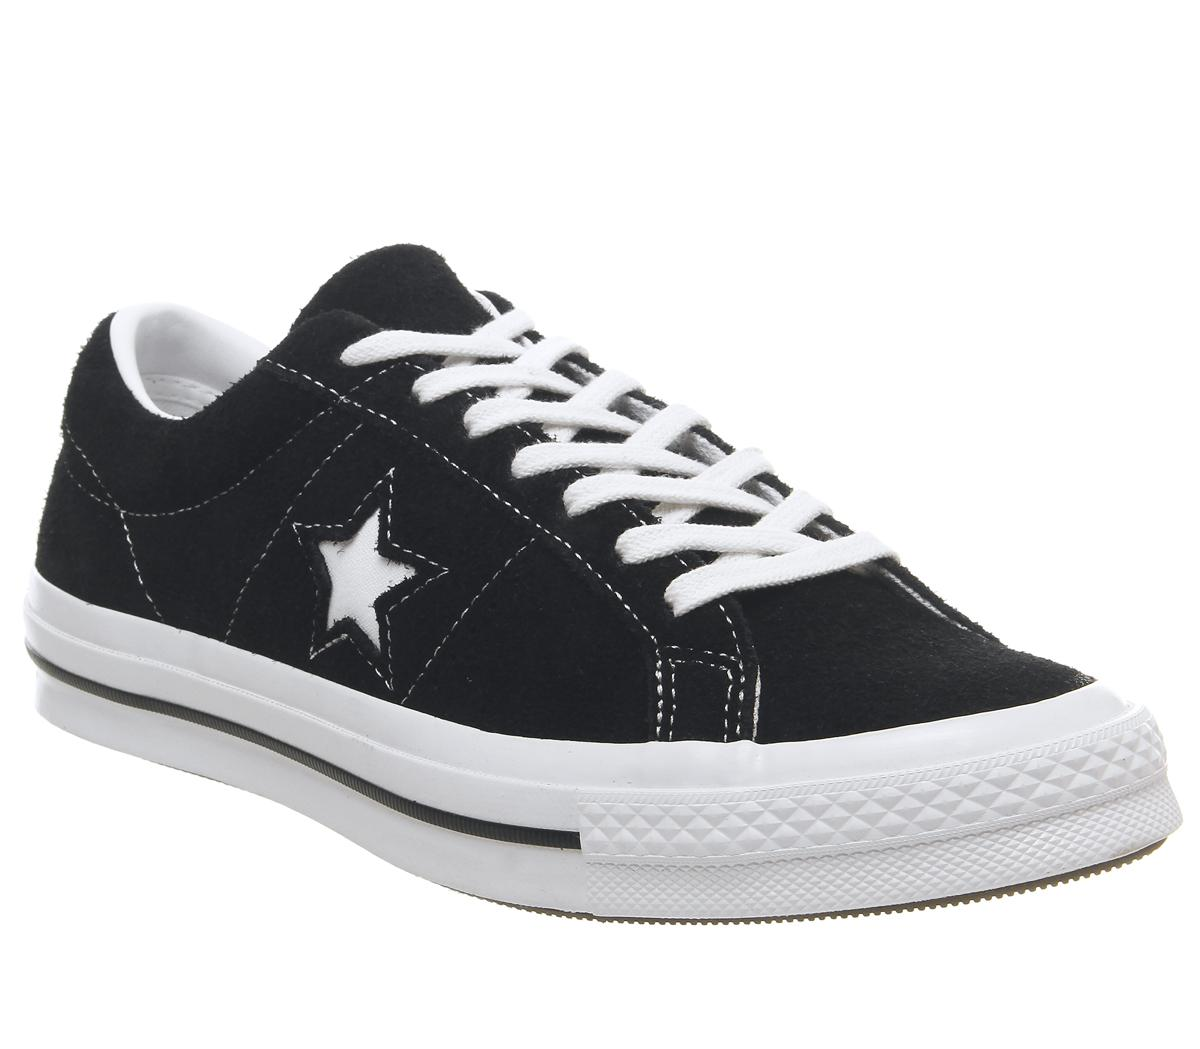 Converse One Star Trainers Black Black